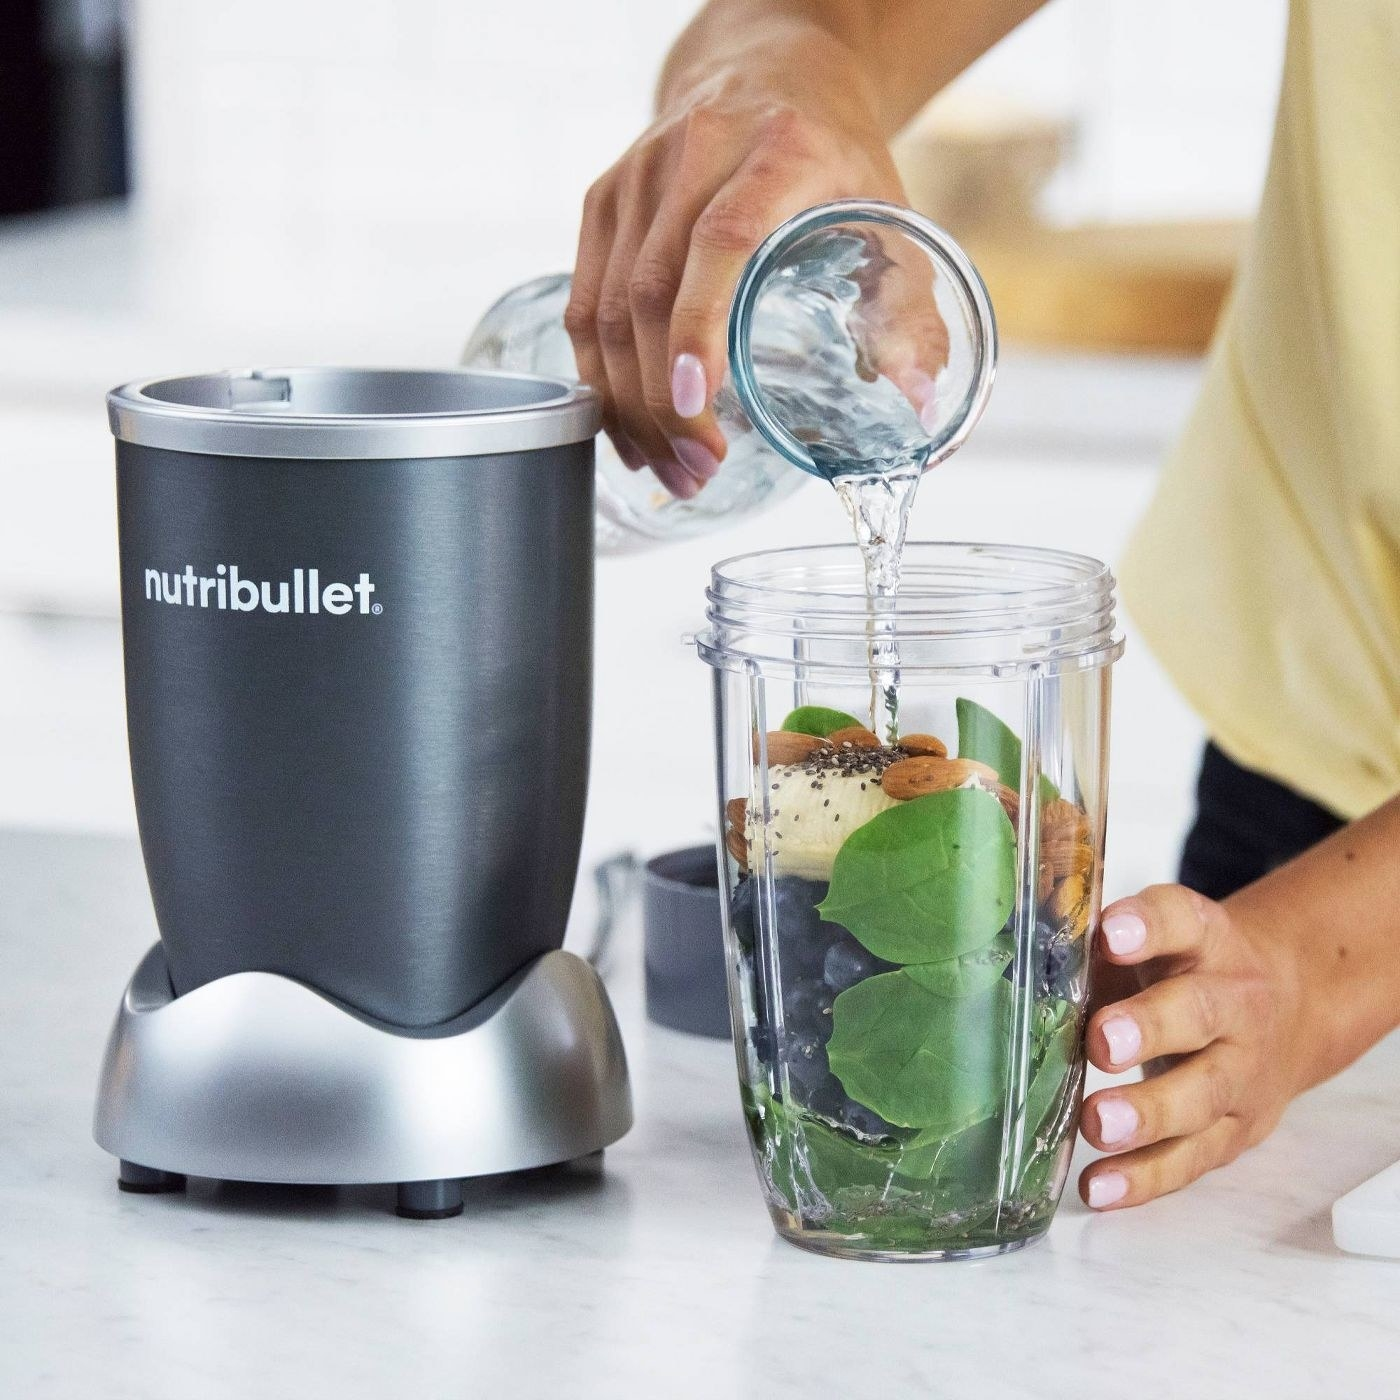 A woman making a smoothing with a NutriBullet blender